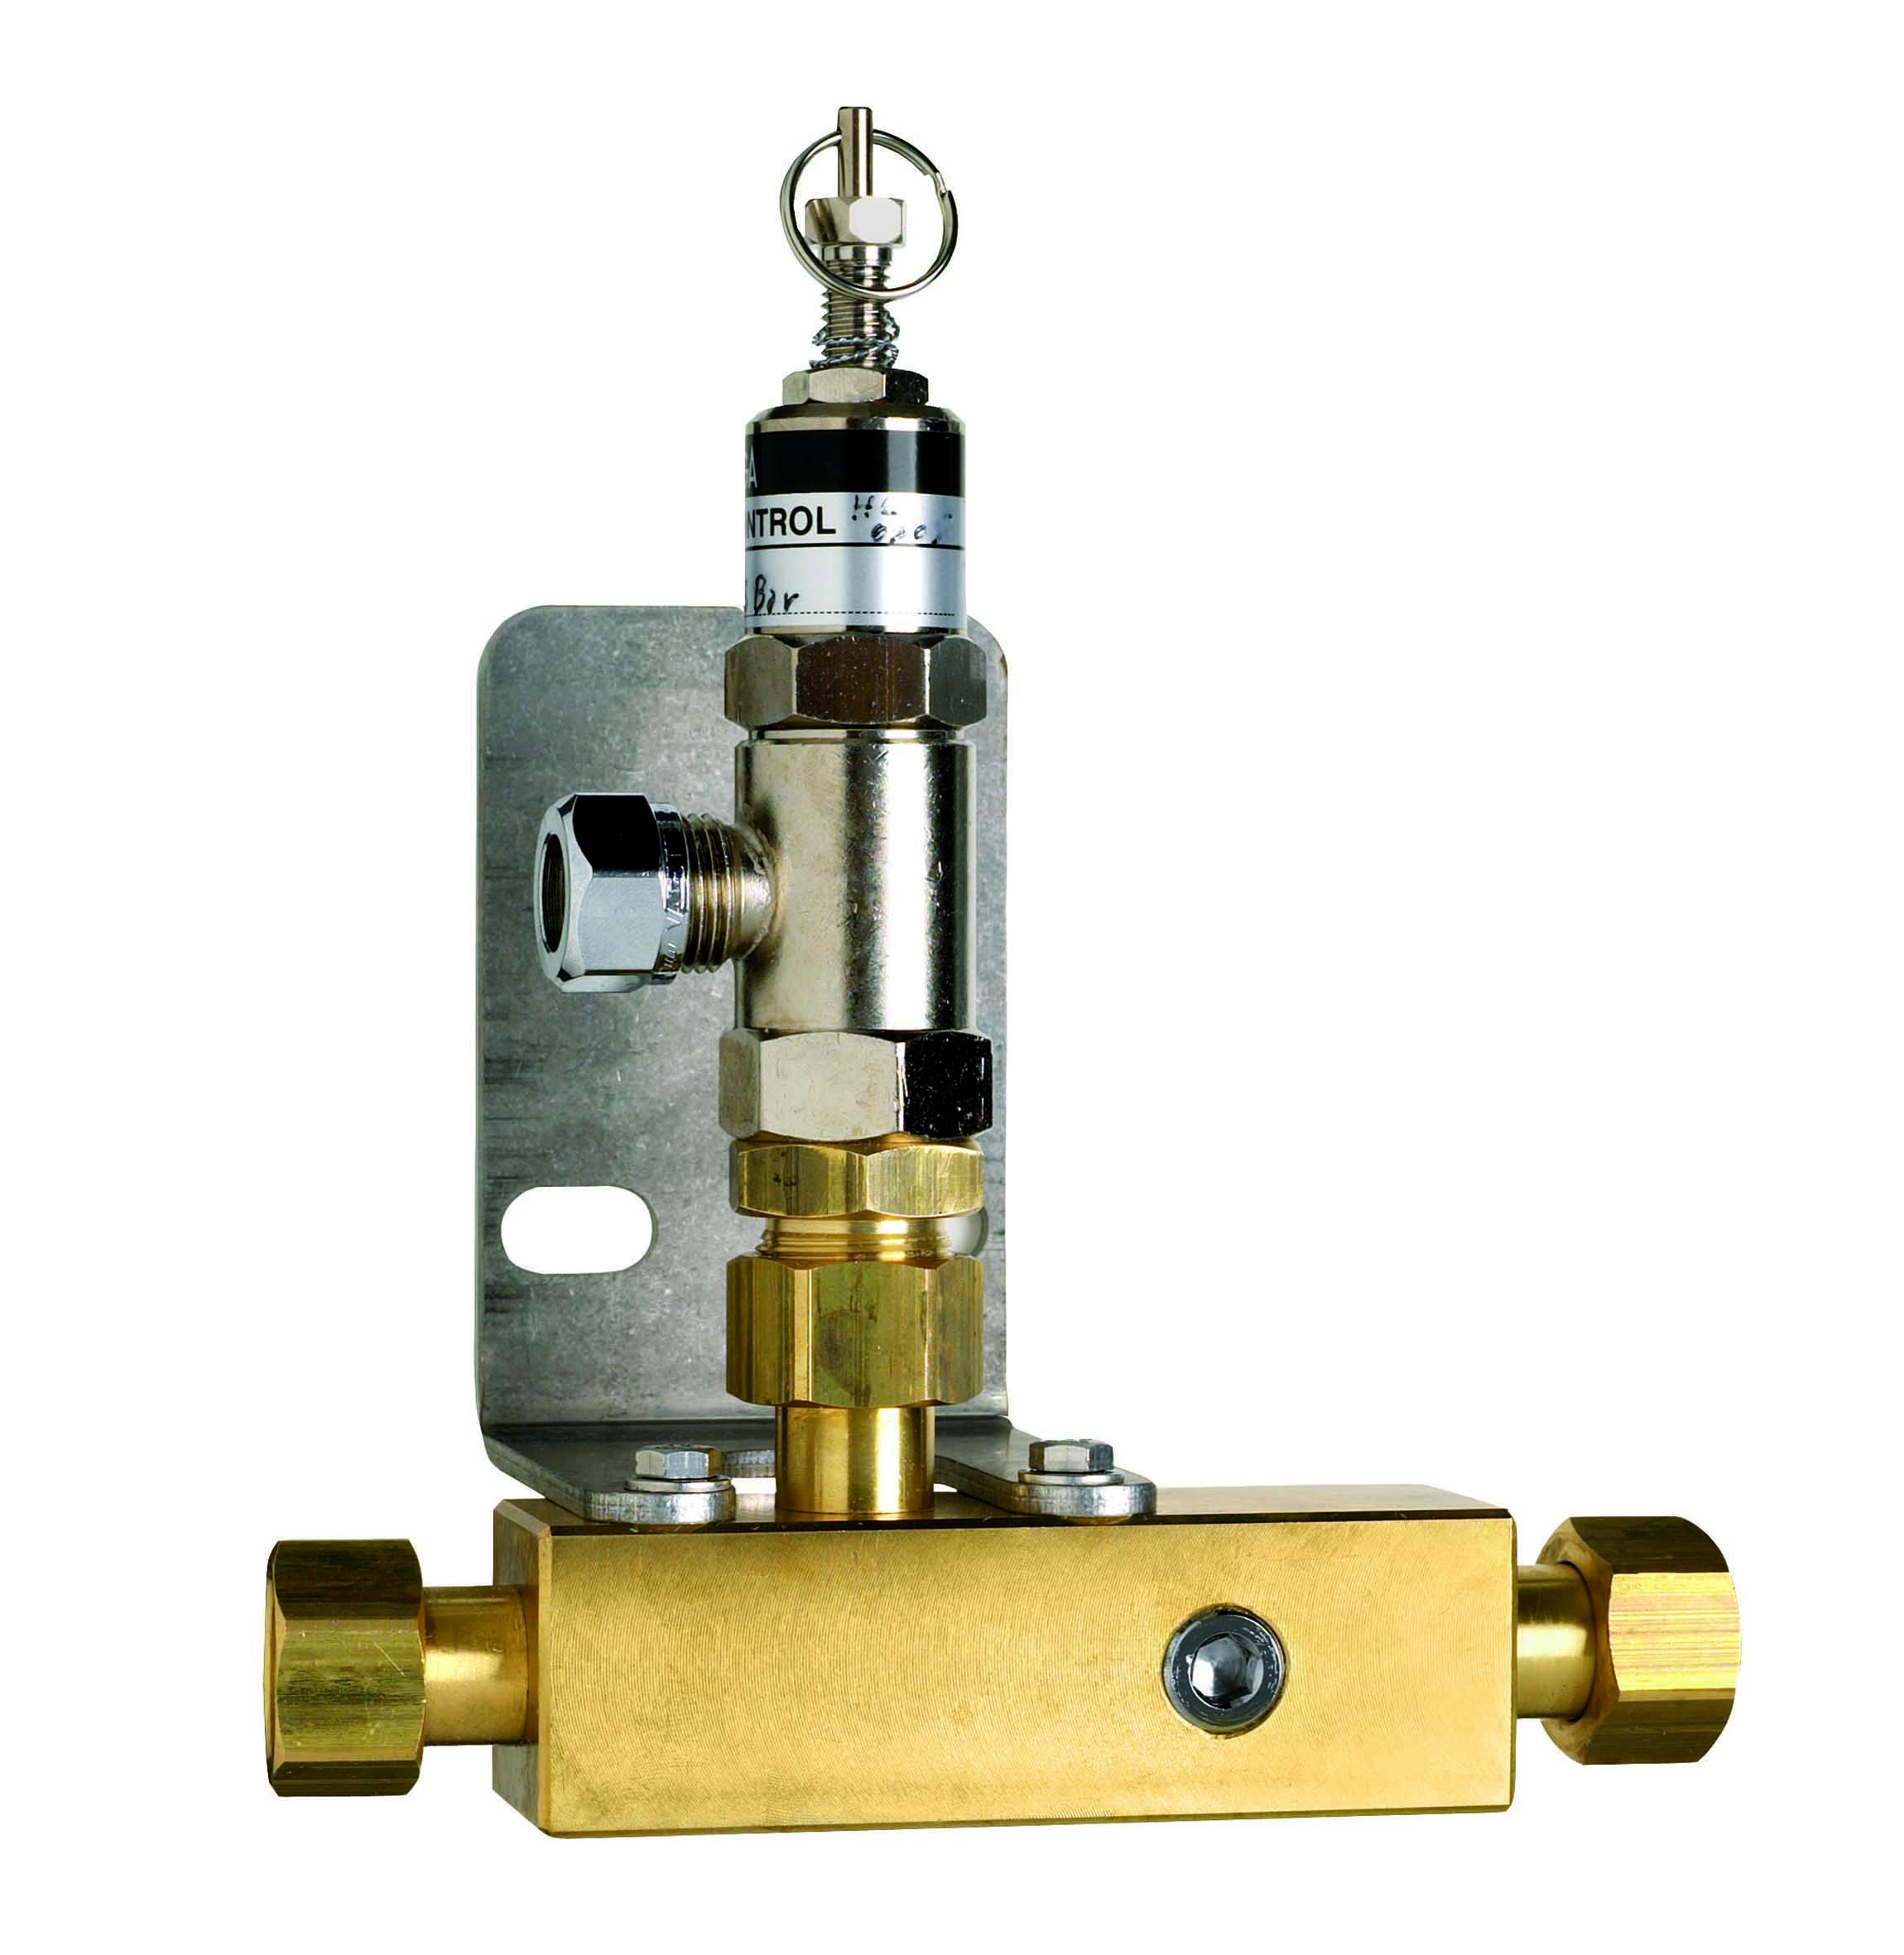 Pressure Relieve Valves for Medical Pipeline Systems